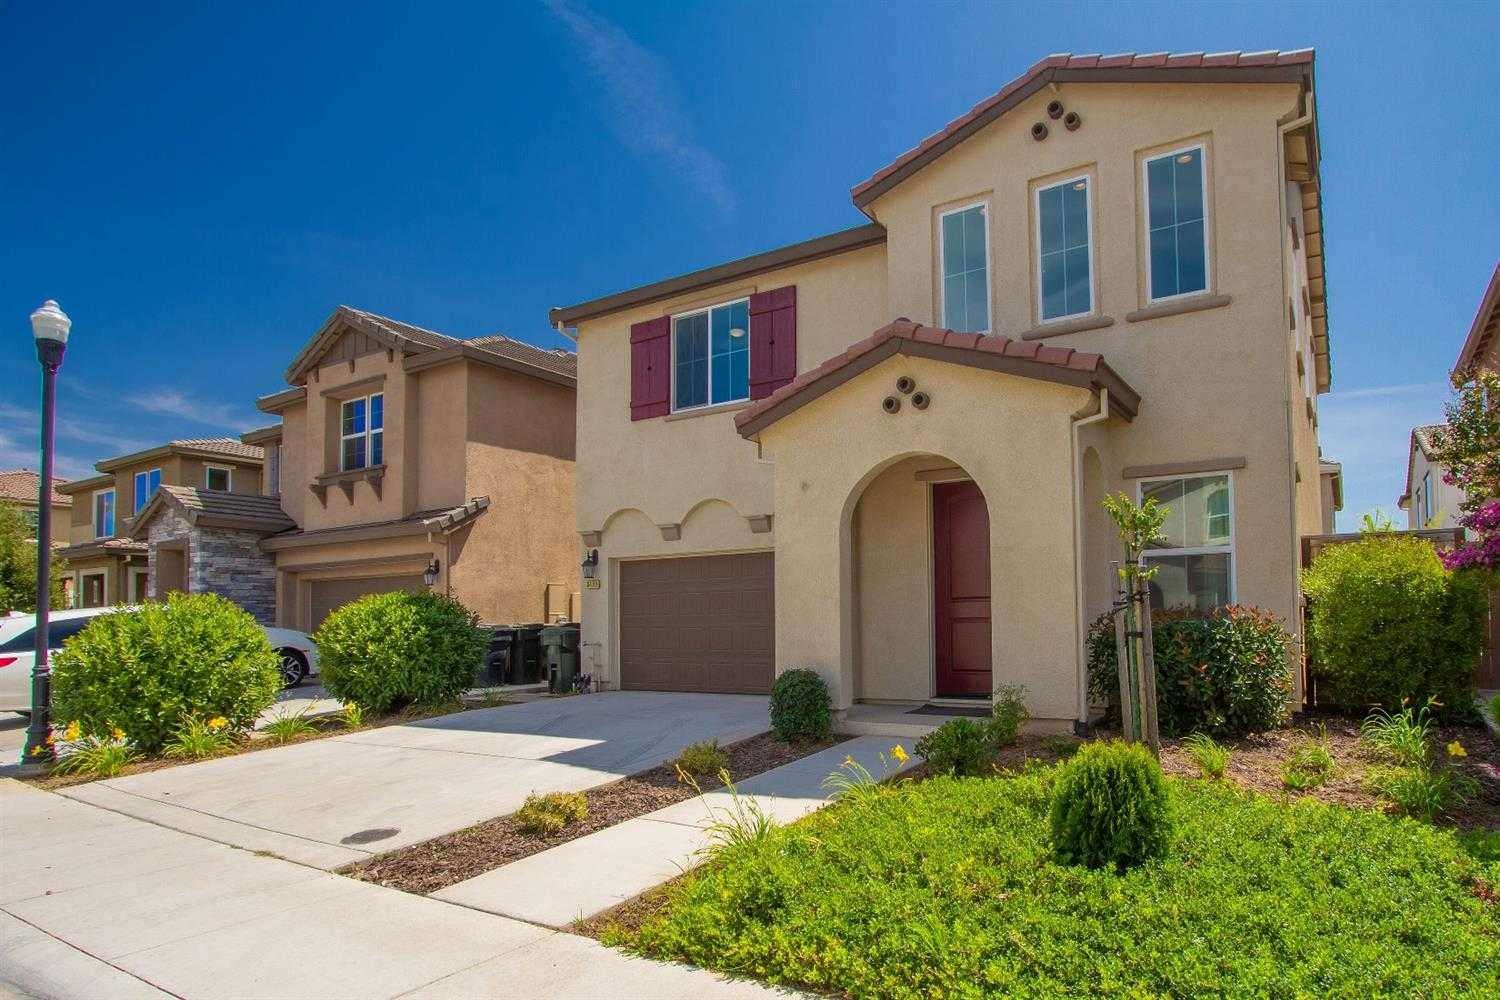 $450,000 - 3Br/3Ba -  for Sale in Madiera East Village 2b, Elk Grove